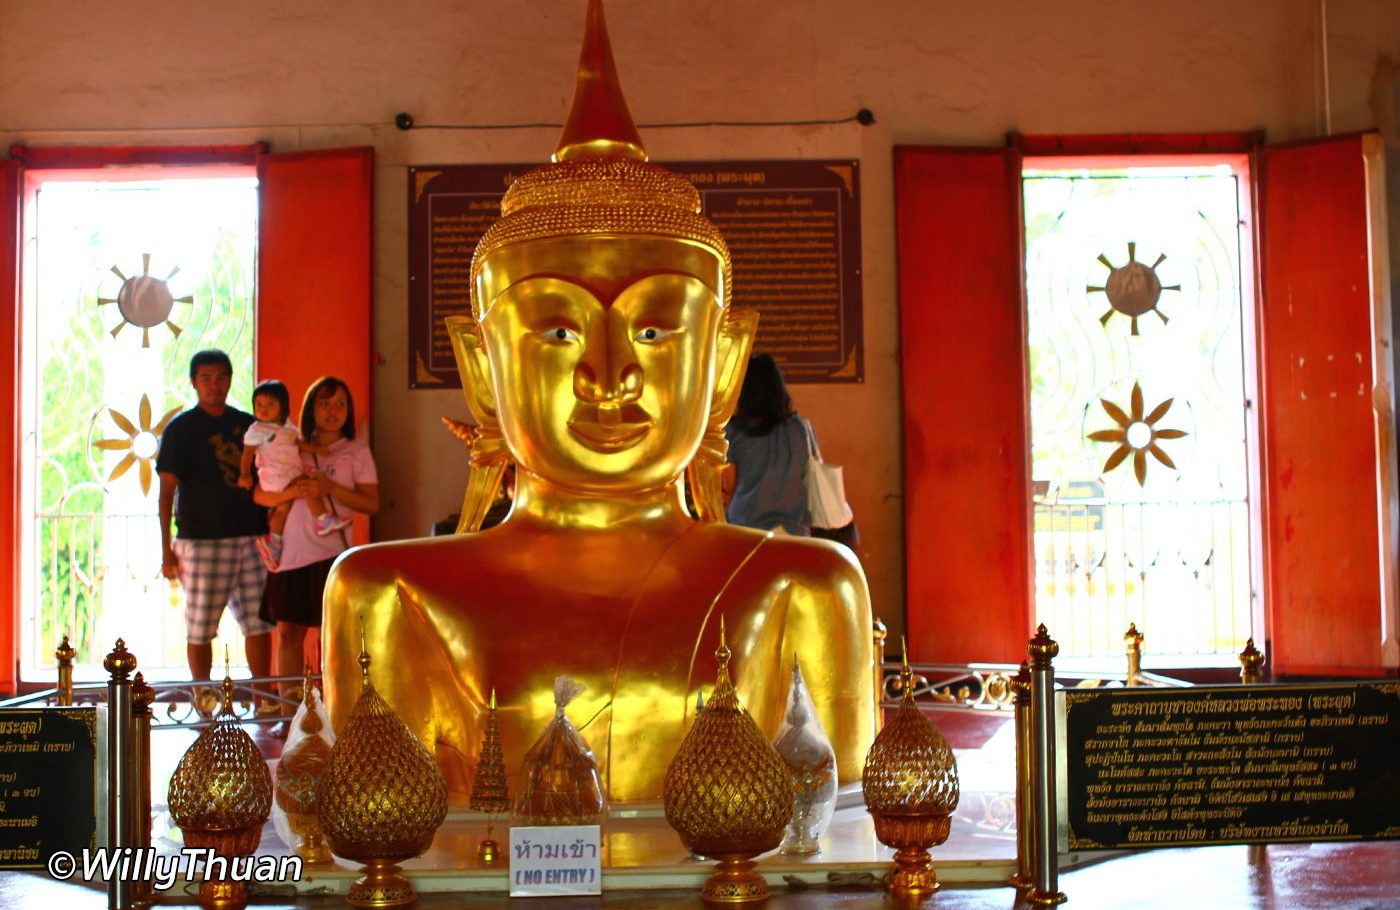 Wat Phra Thong in Phuket